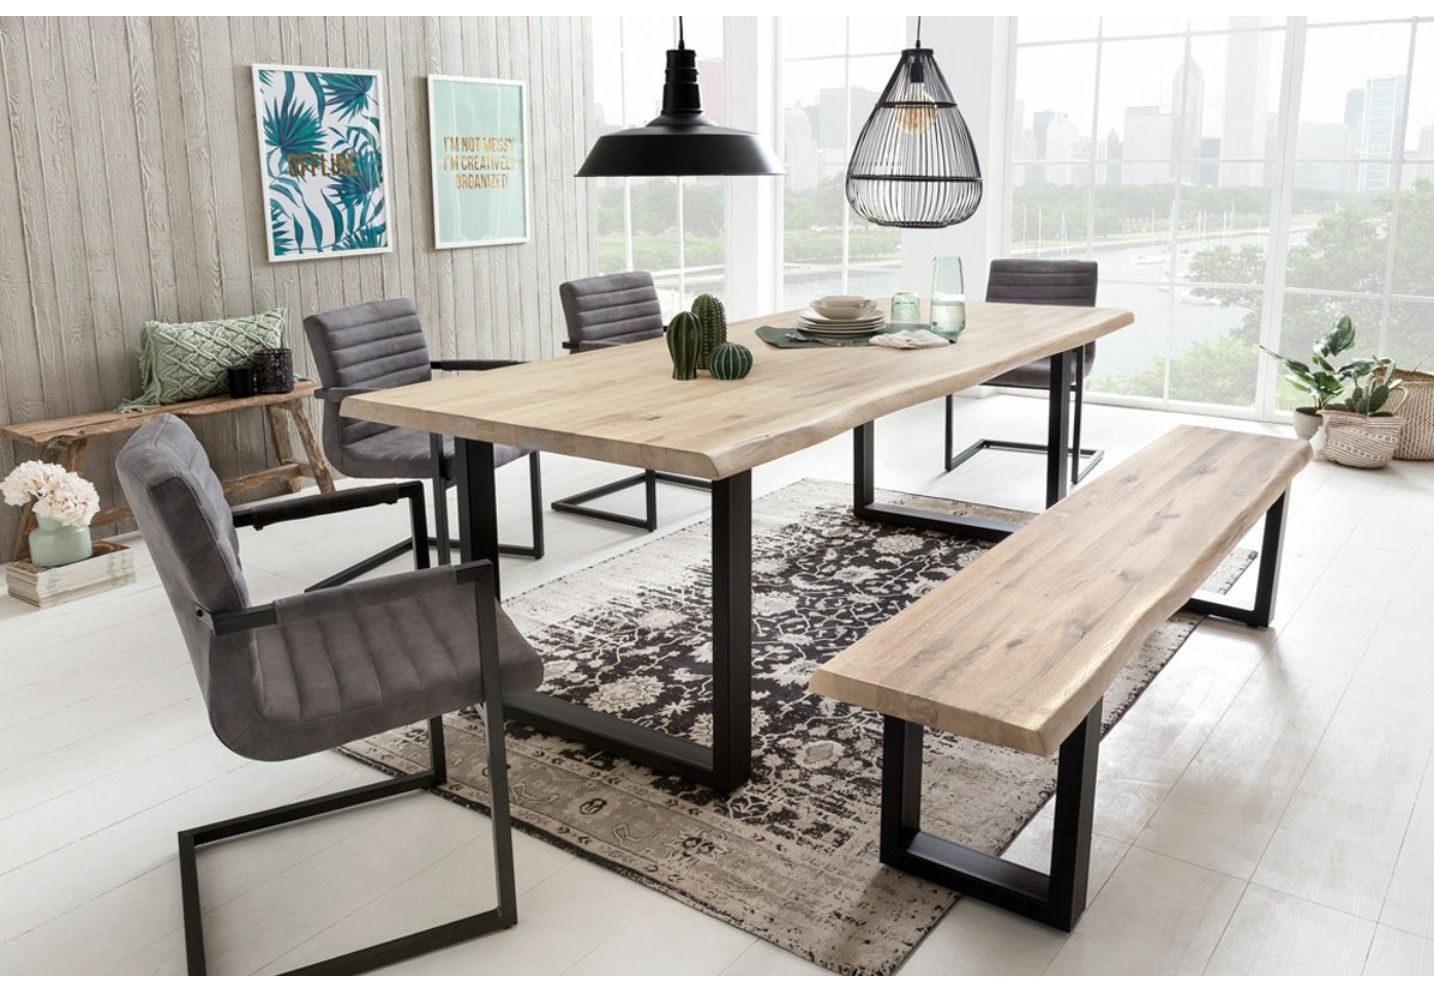 Salle A Manger In 2020 Mood Board Living Room Home Decor Table